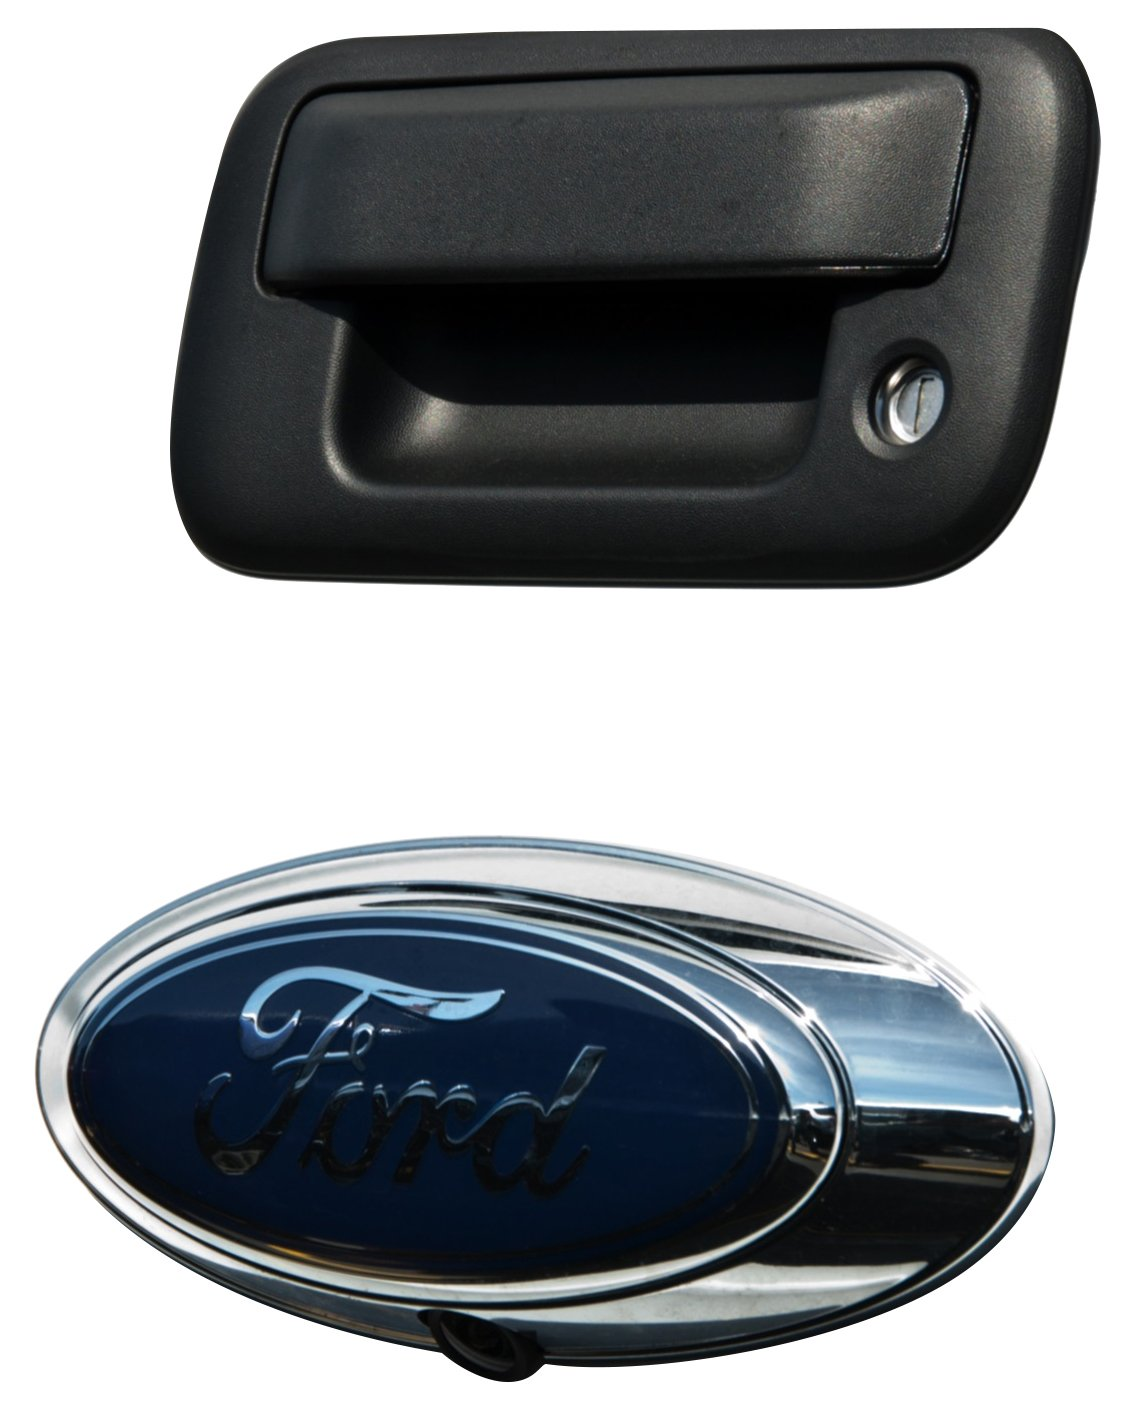 Brandmotion 1008-6509 Ford Oval Emblem OEM Camera with Chassis Harness for Ford Trucks /& Flex